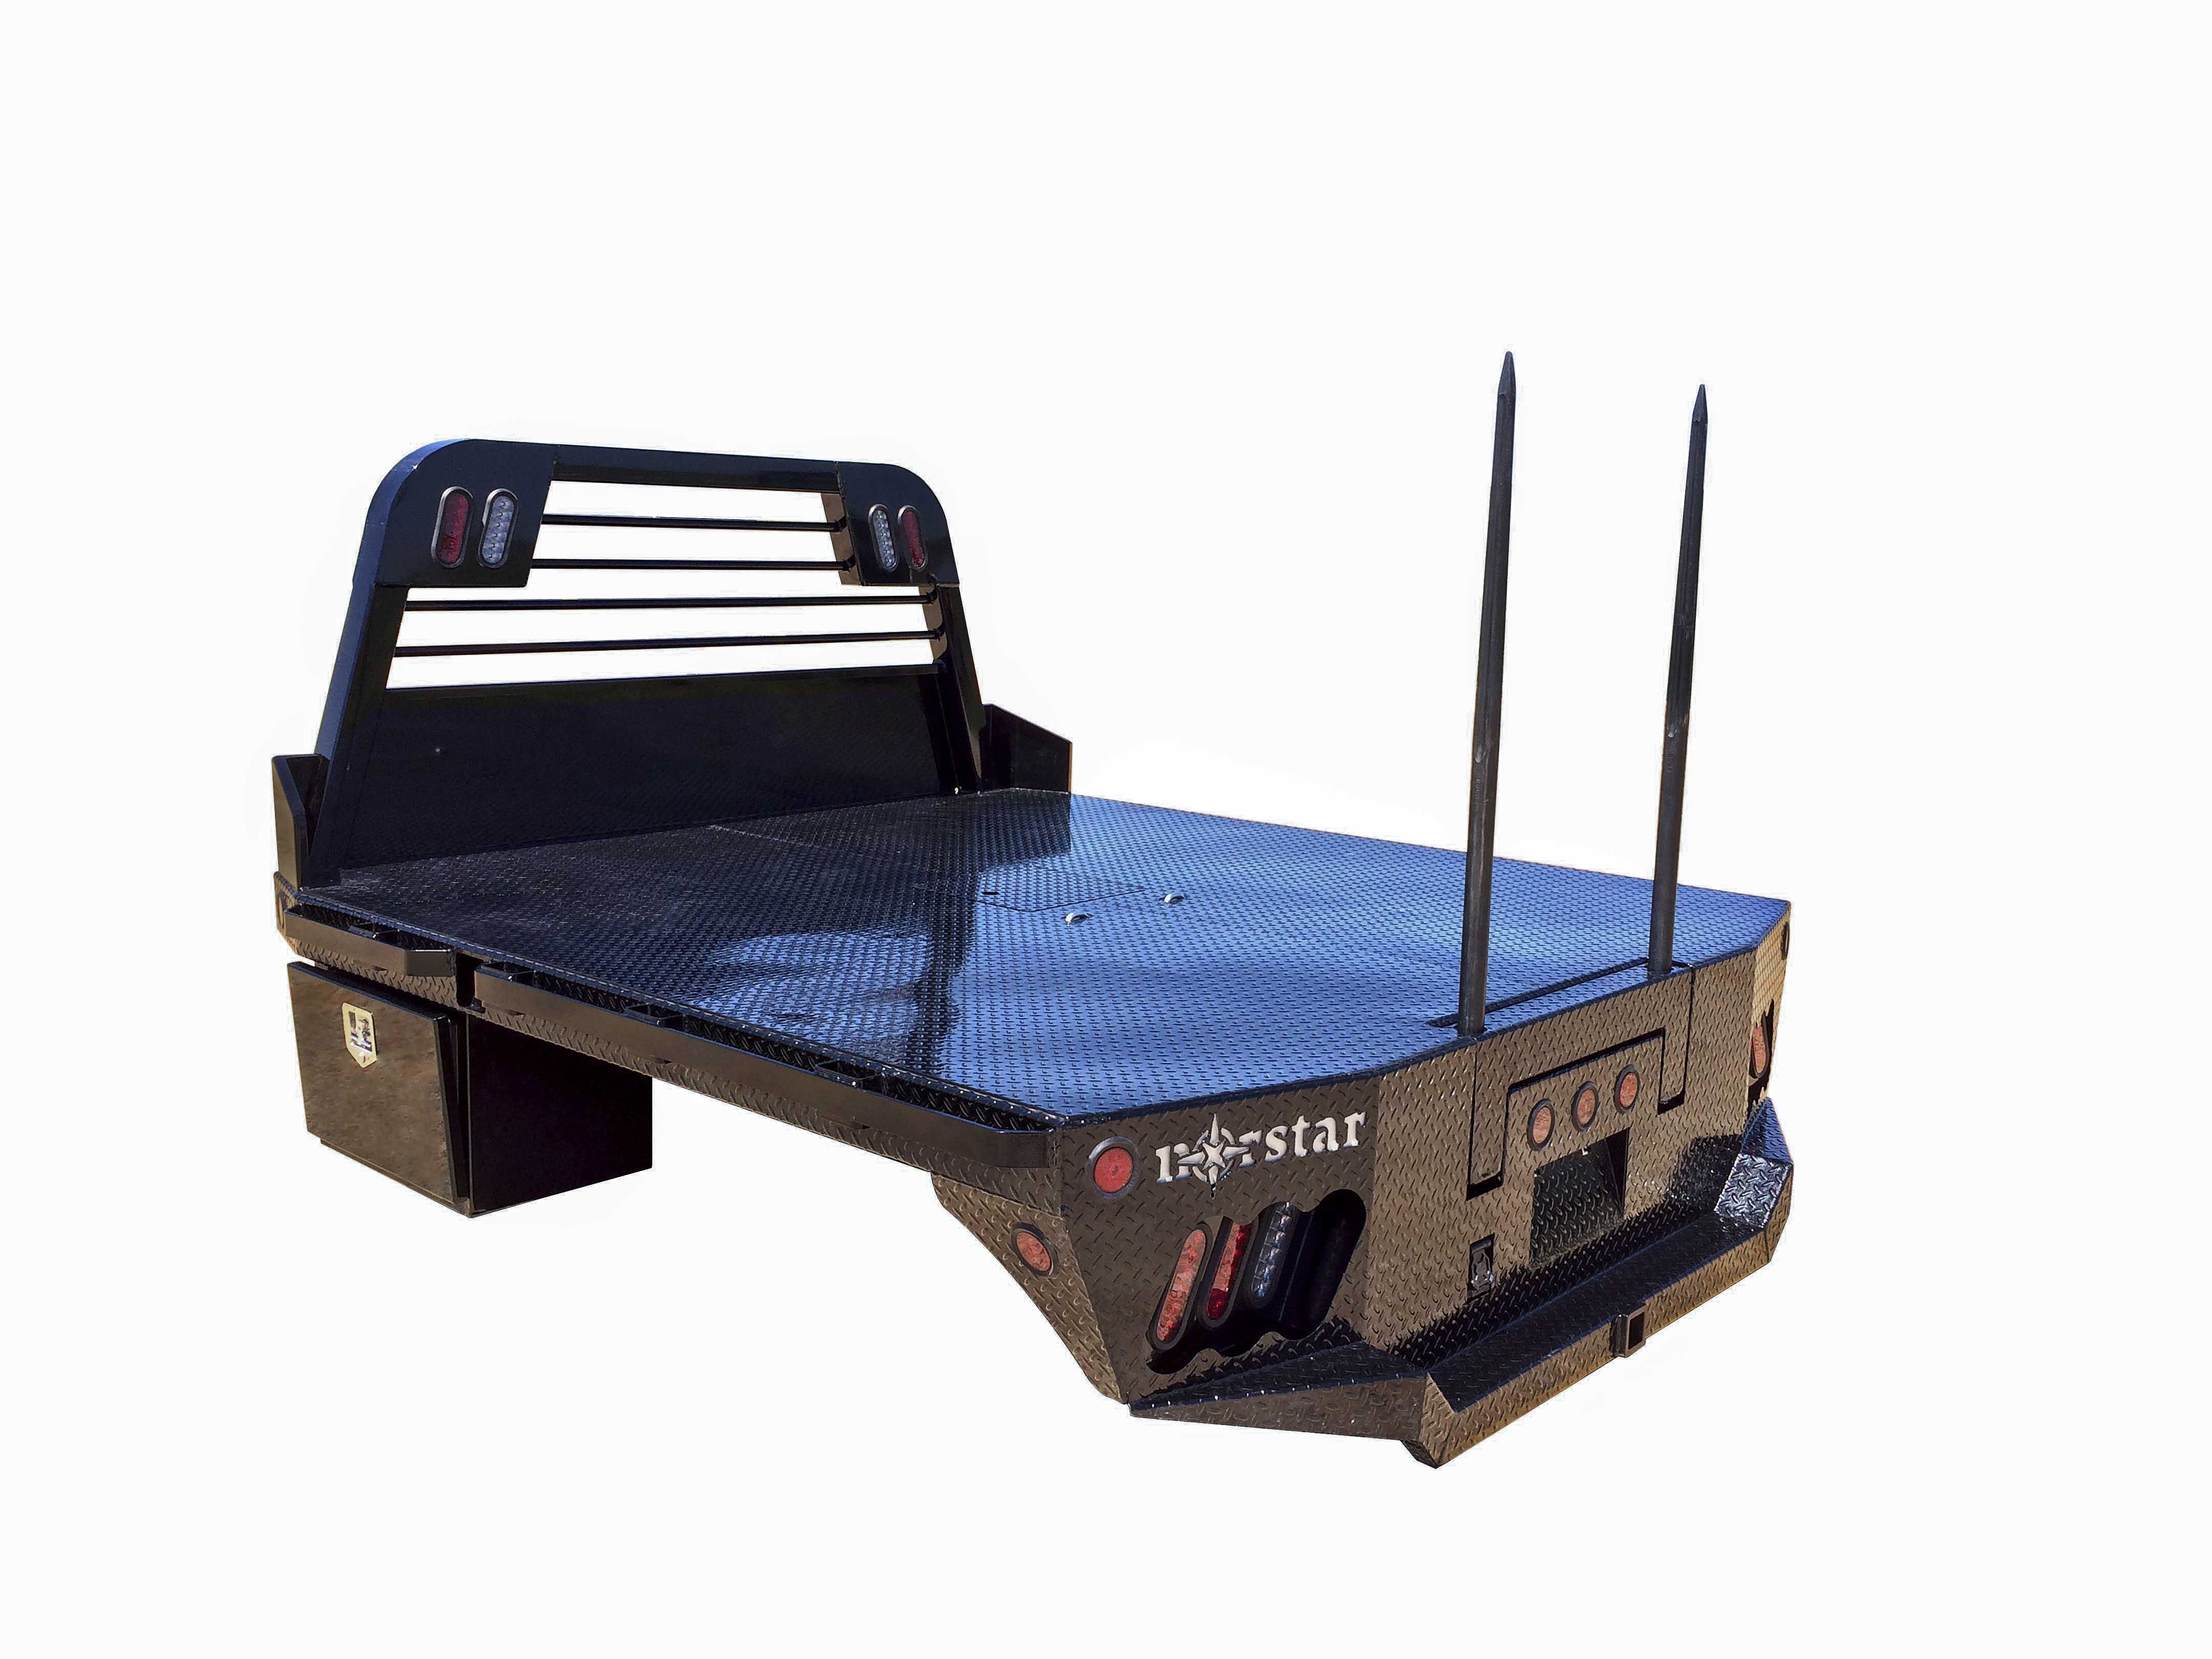 Norstar Model SR Truck Bed with HB1 Bale Spike Option